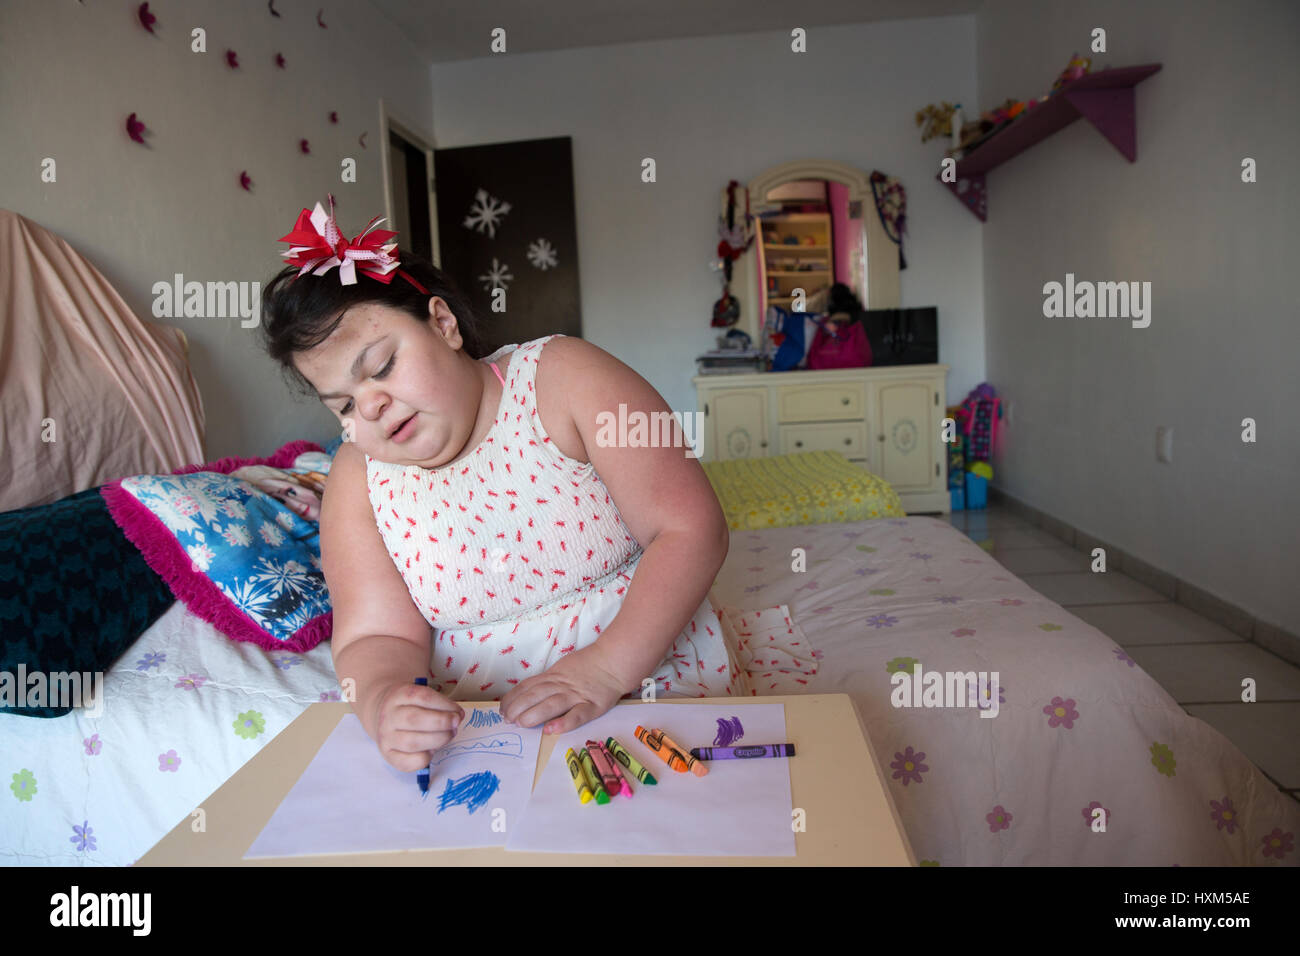 Ana Ximena Navarro is pictured drawing at her home in Guadalajara, Mexico on February 22, 2017. Ximena was diagnosed - Stock Image